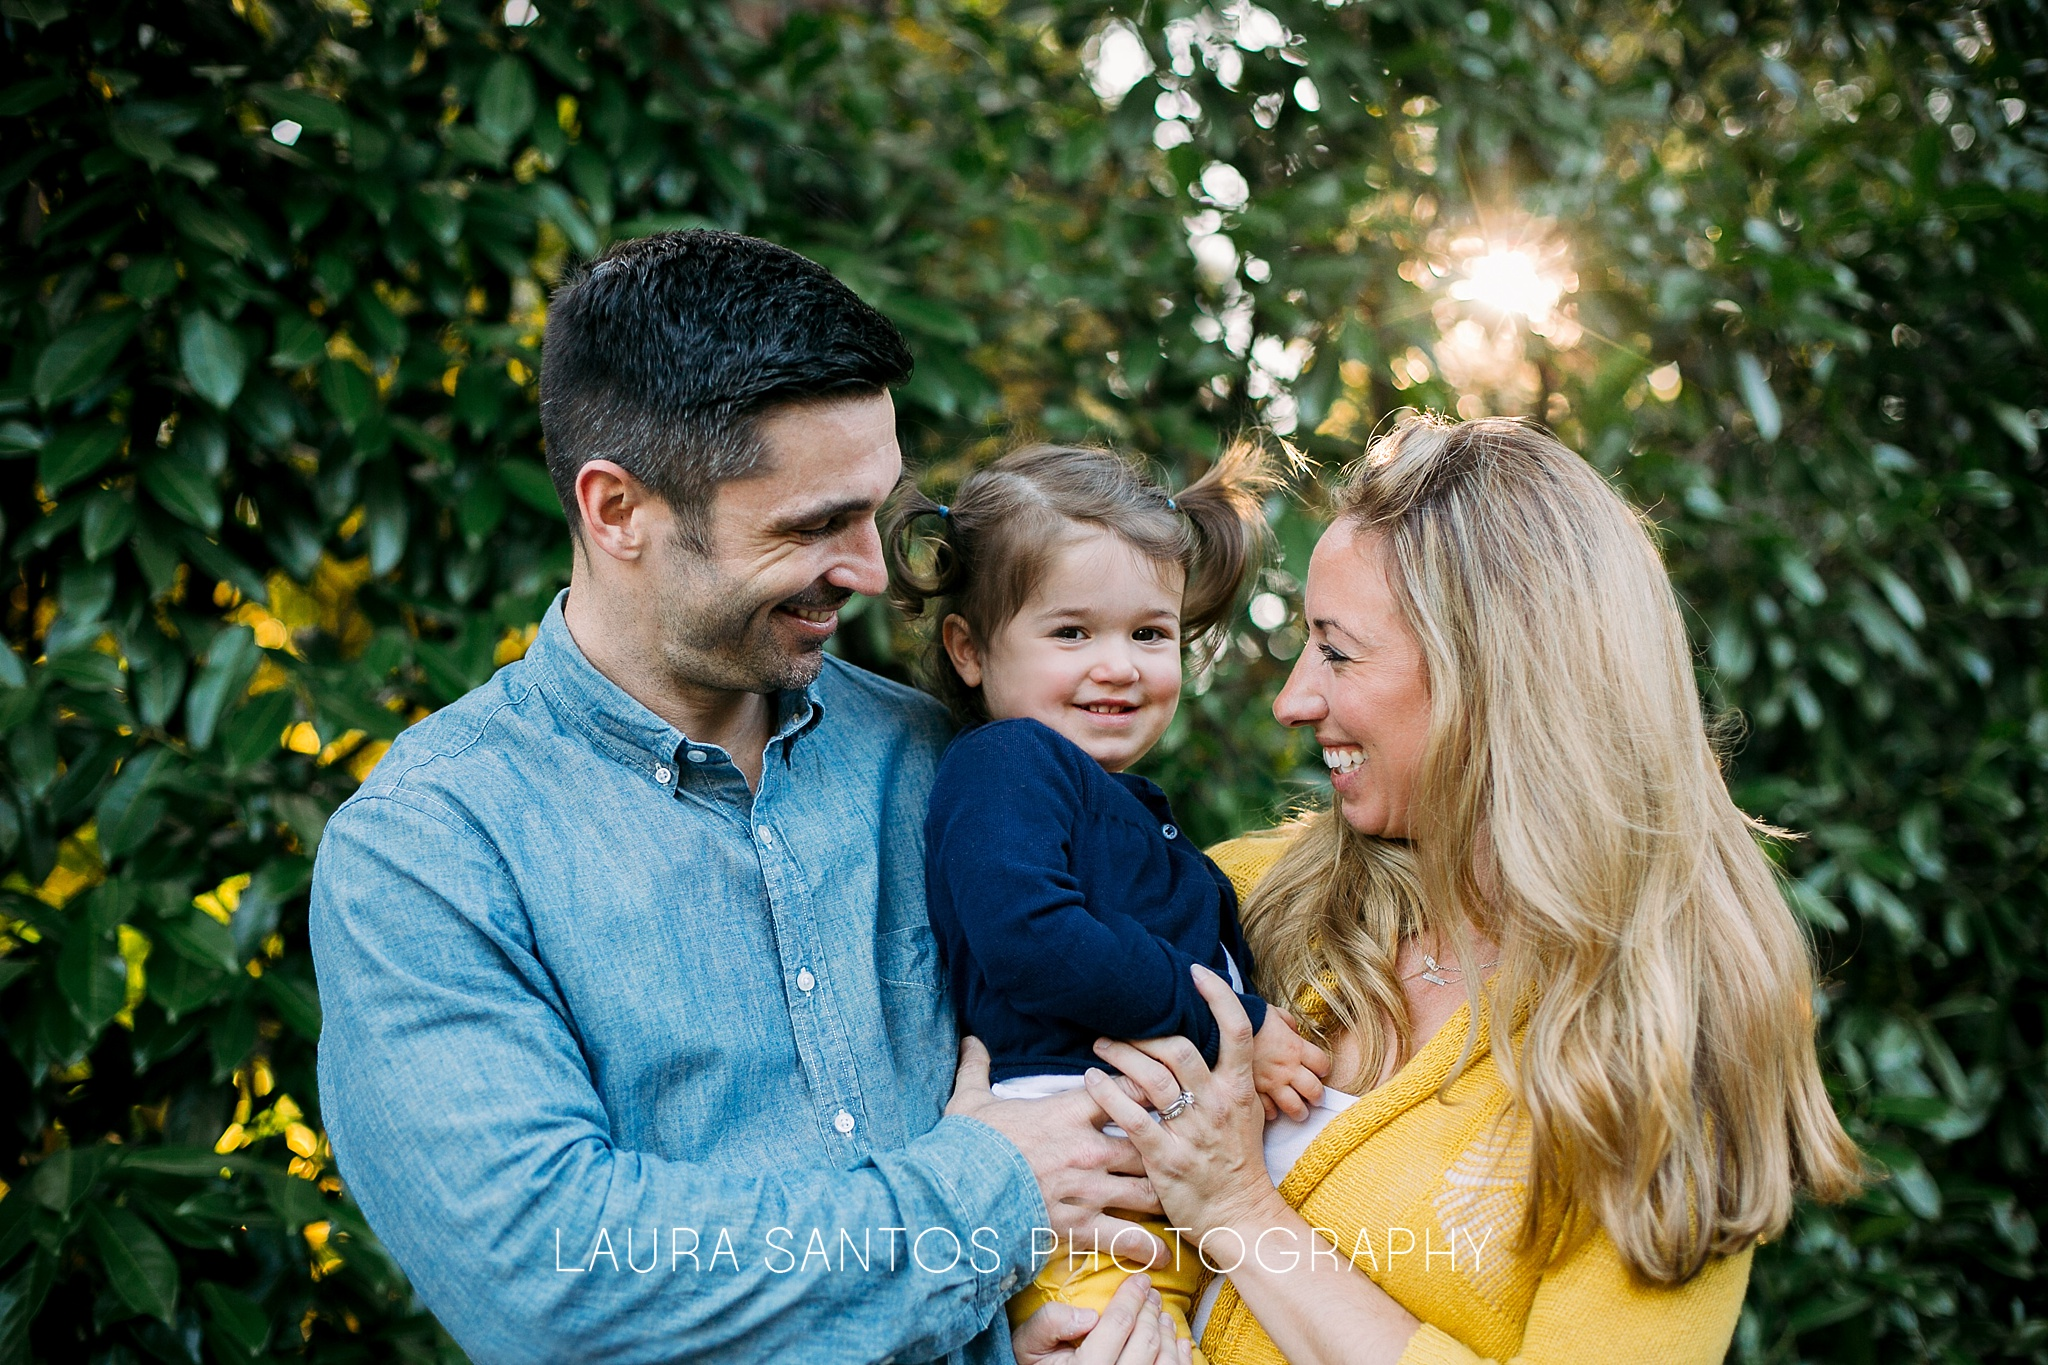 Laura Santos Photography Portland Oregon Family Photographer_0096.jpg